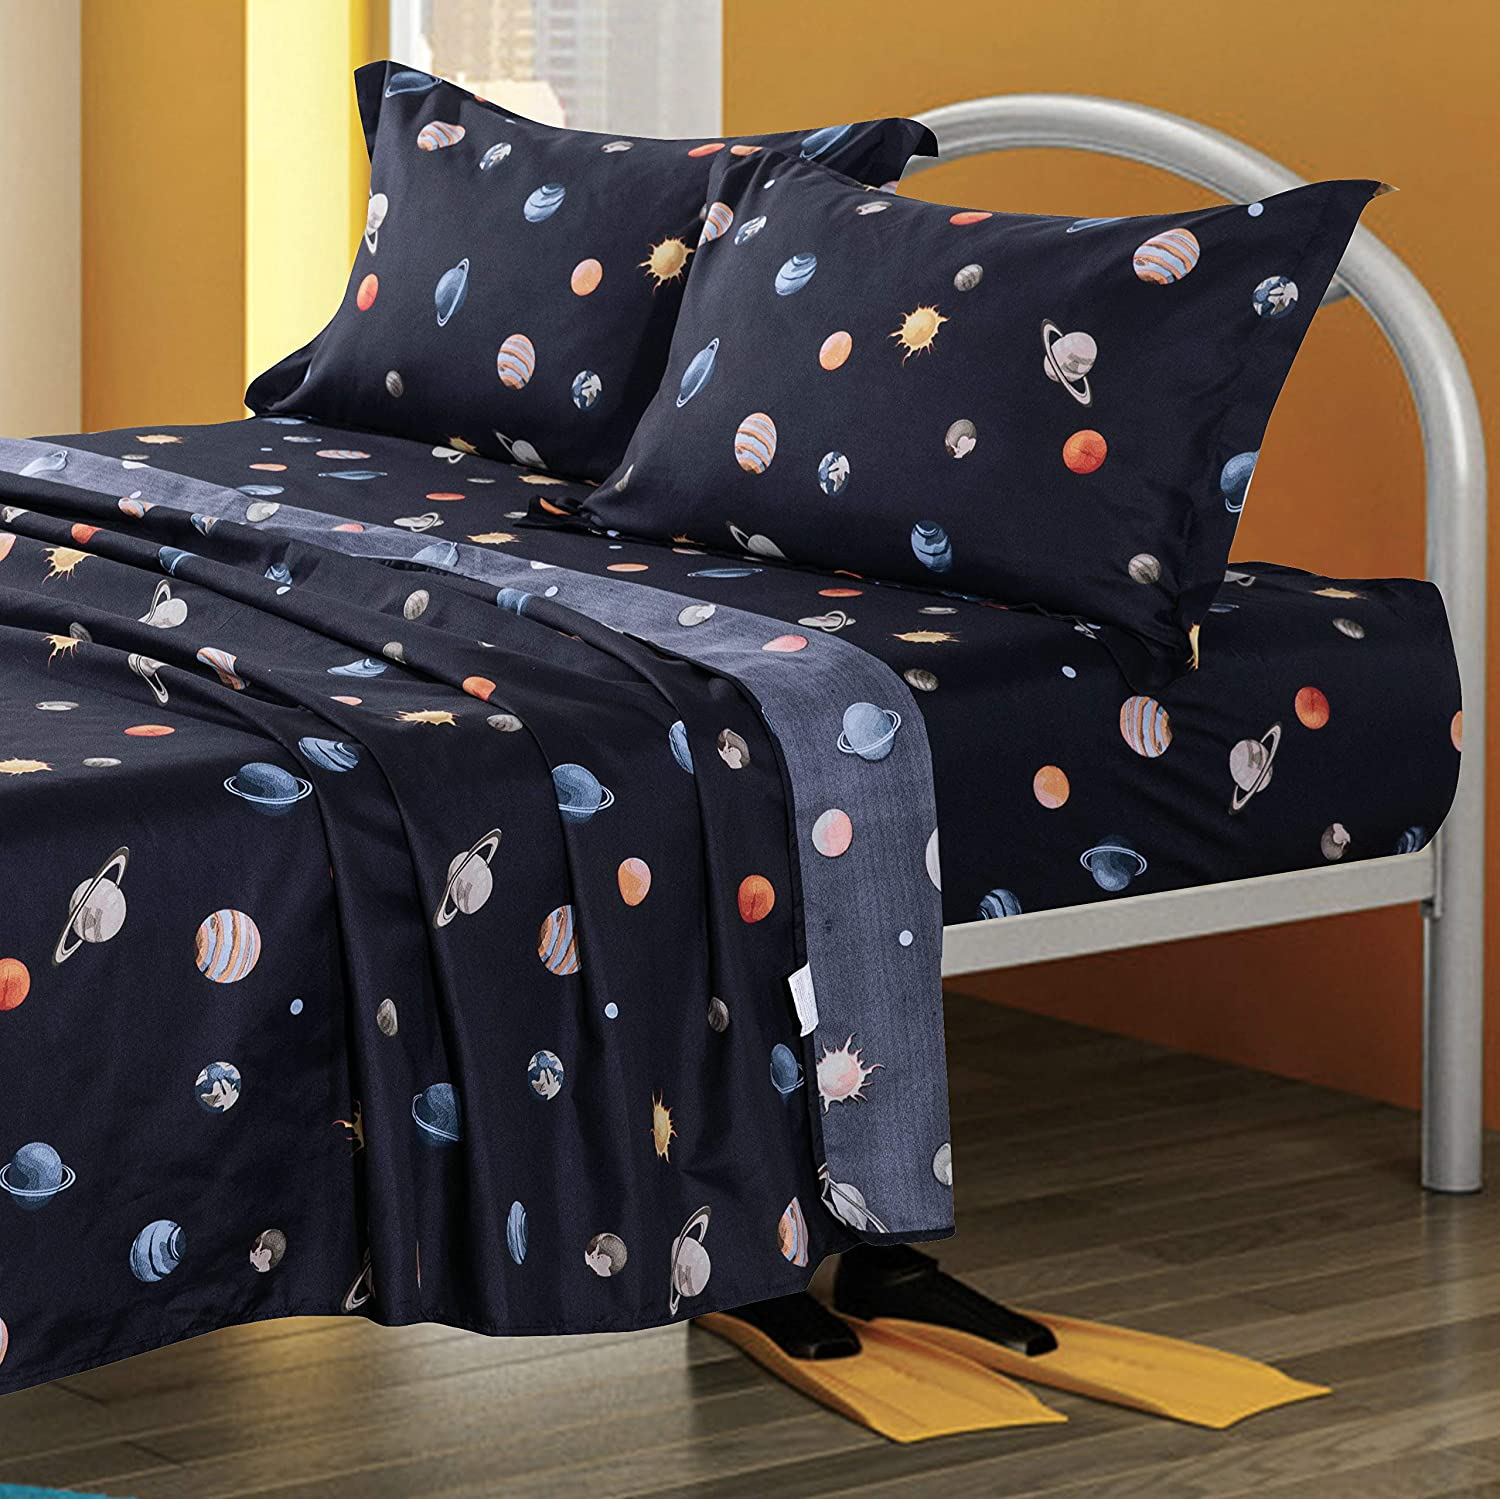 TOTORO Planet Star Design Sheets Set Twin Full Queen Size 4 Piece Fitted Sheet Flat Sheet 2 Pillowcases, Microfiber Sheets for Matresses, Navy Blue Color for Kids Boys (Planet Star, Navy Blue, Twin)